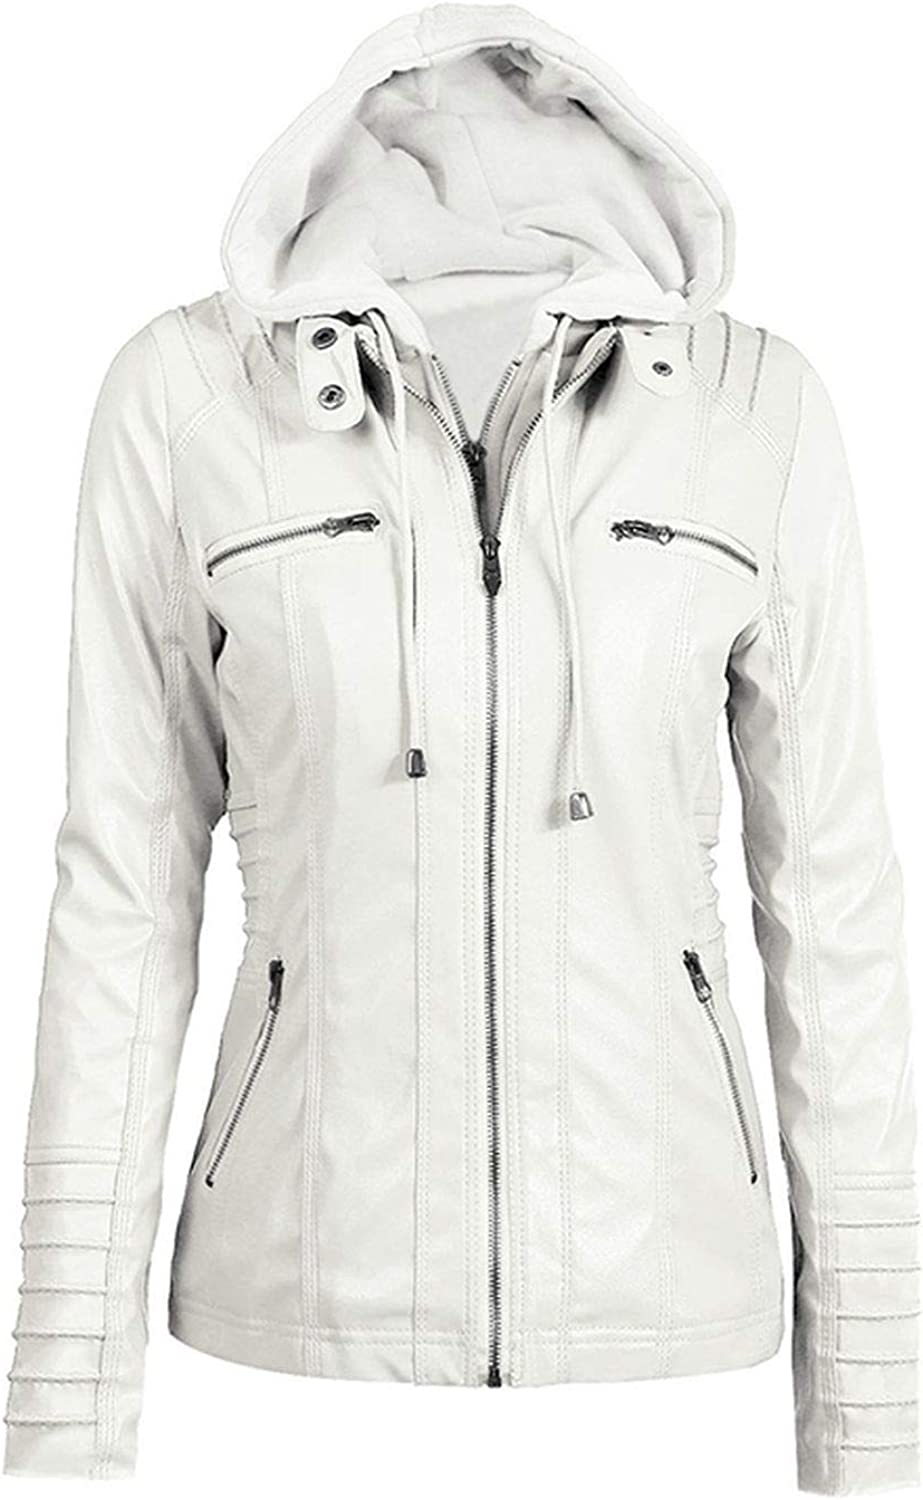 Be fearless Winter Slim Zipper Hooded Coat Female Warm Casual Outerwear Solid 2XL Fall Leather Jacket Coats,White,M